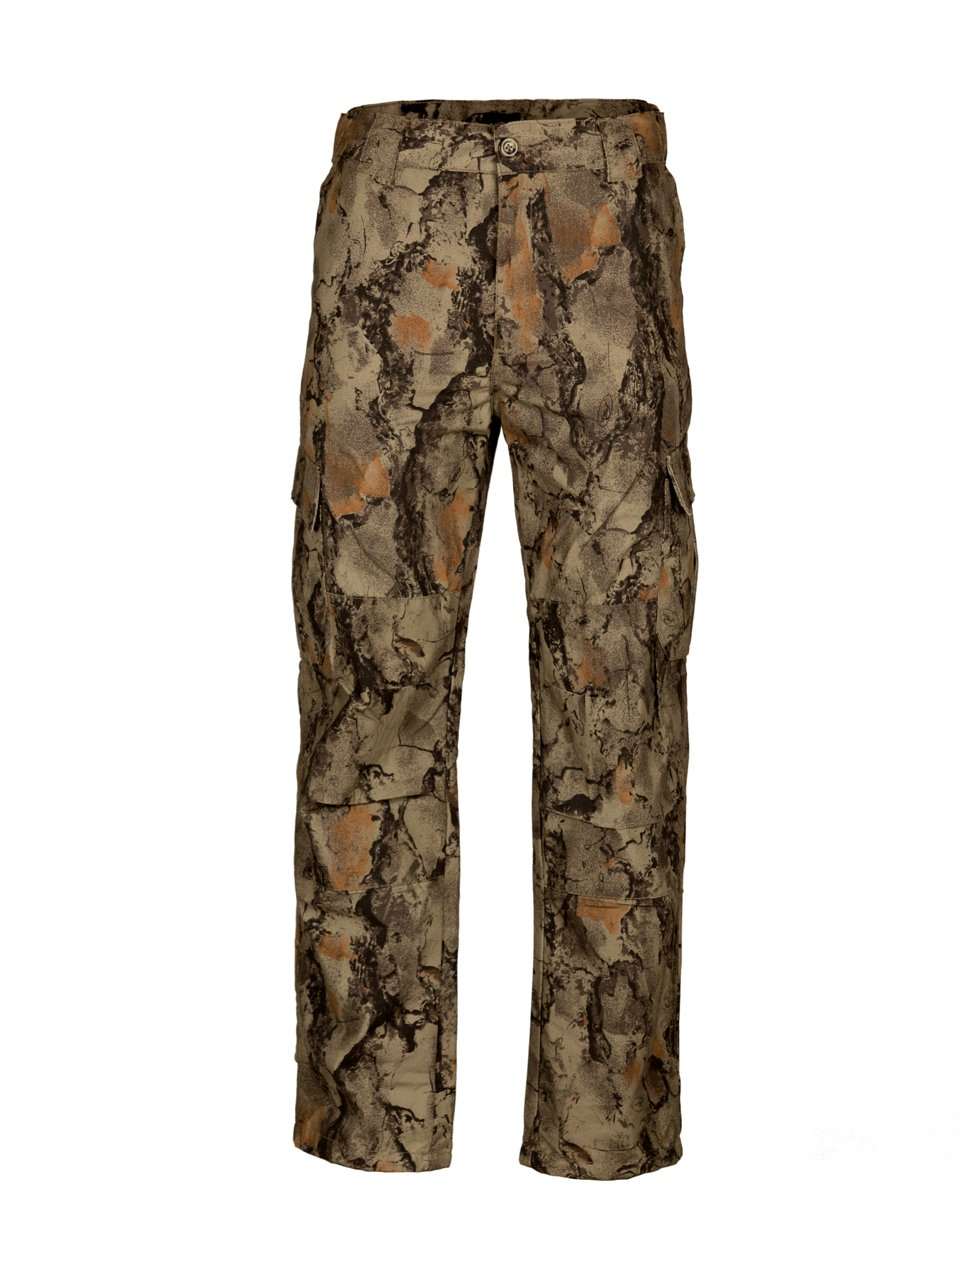 91171418a39c COTTON POLY CARGO PANTS  Our Natural Gear camo tactical pants are ideal for  any hunter who means business. They re made from a lightweight and  comfortable ...